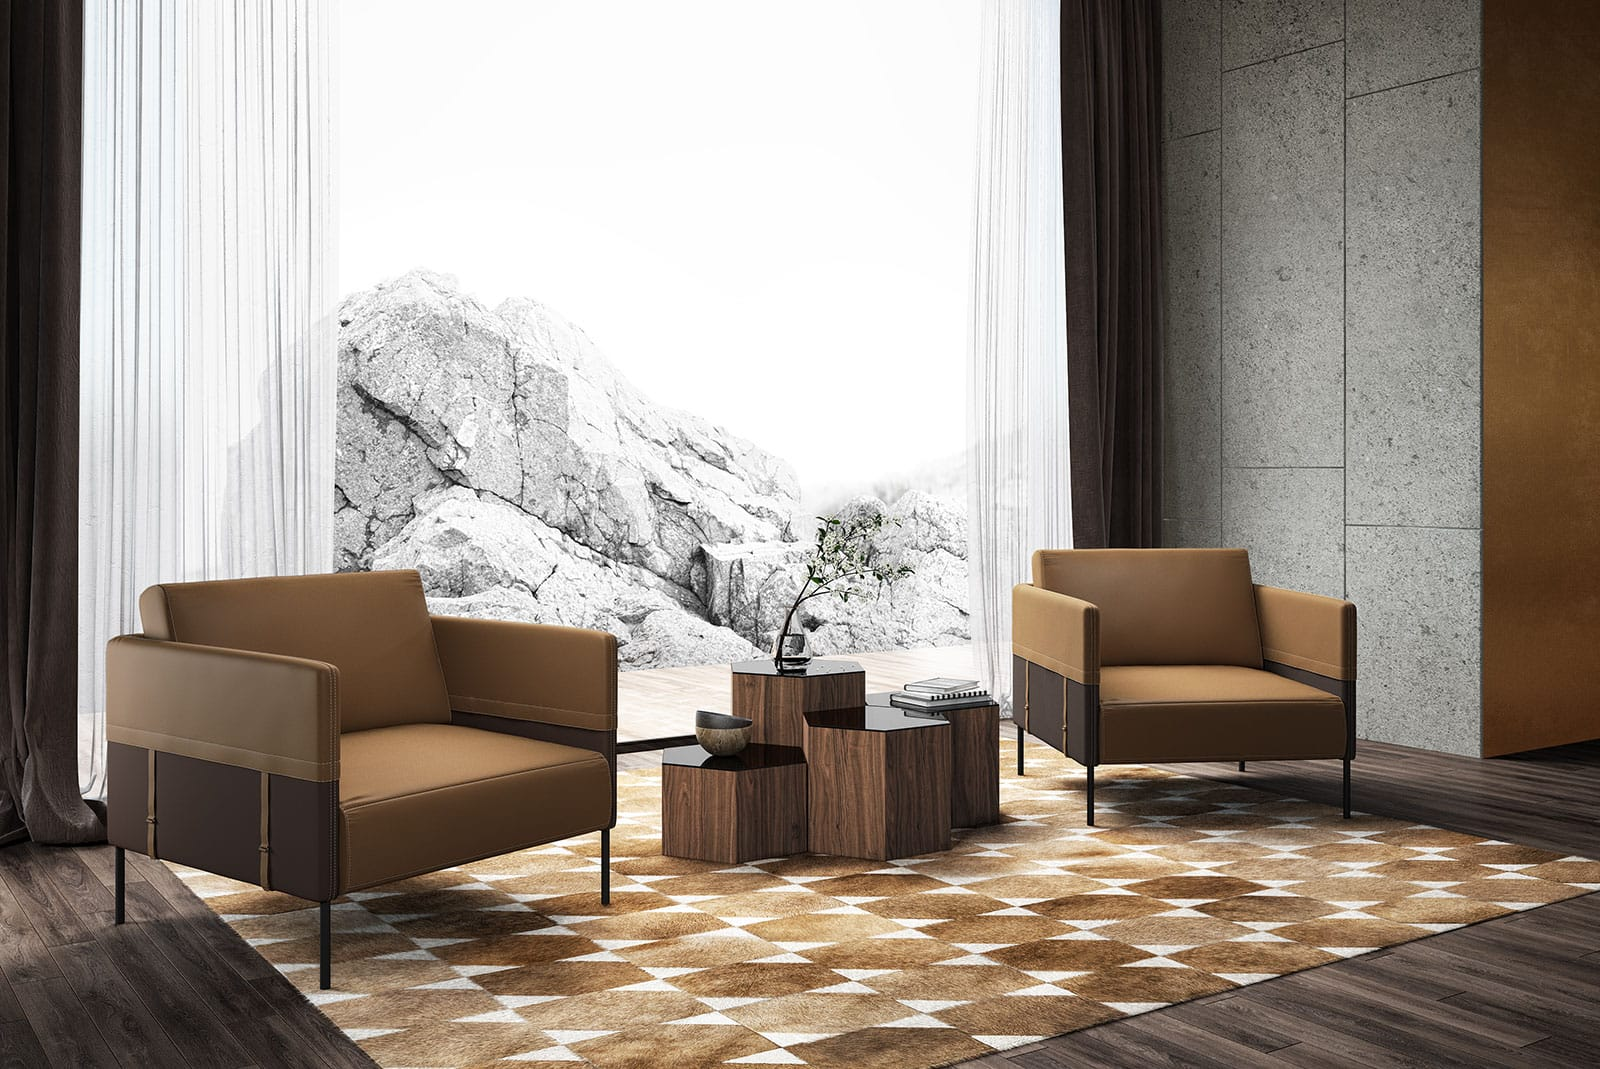 Allen Armchair Safari and Fendi by Modloft